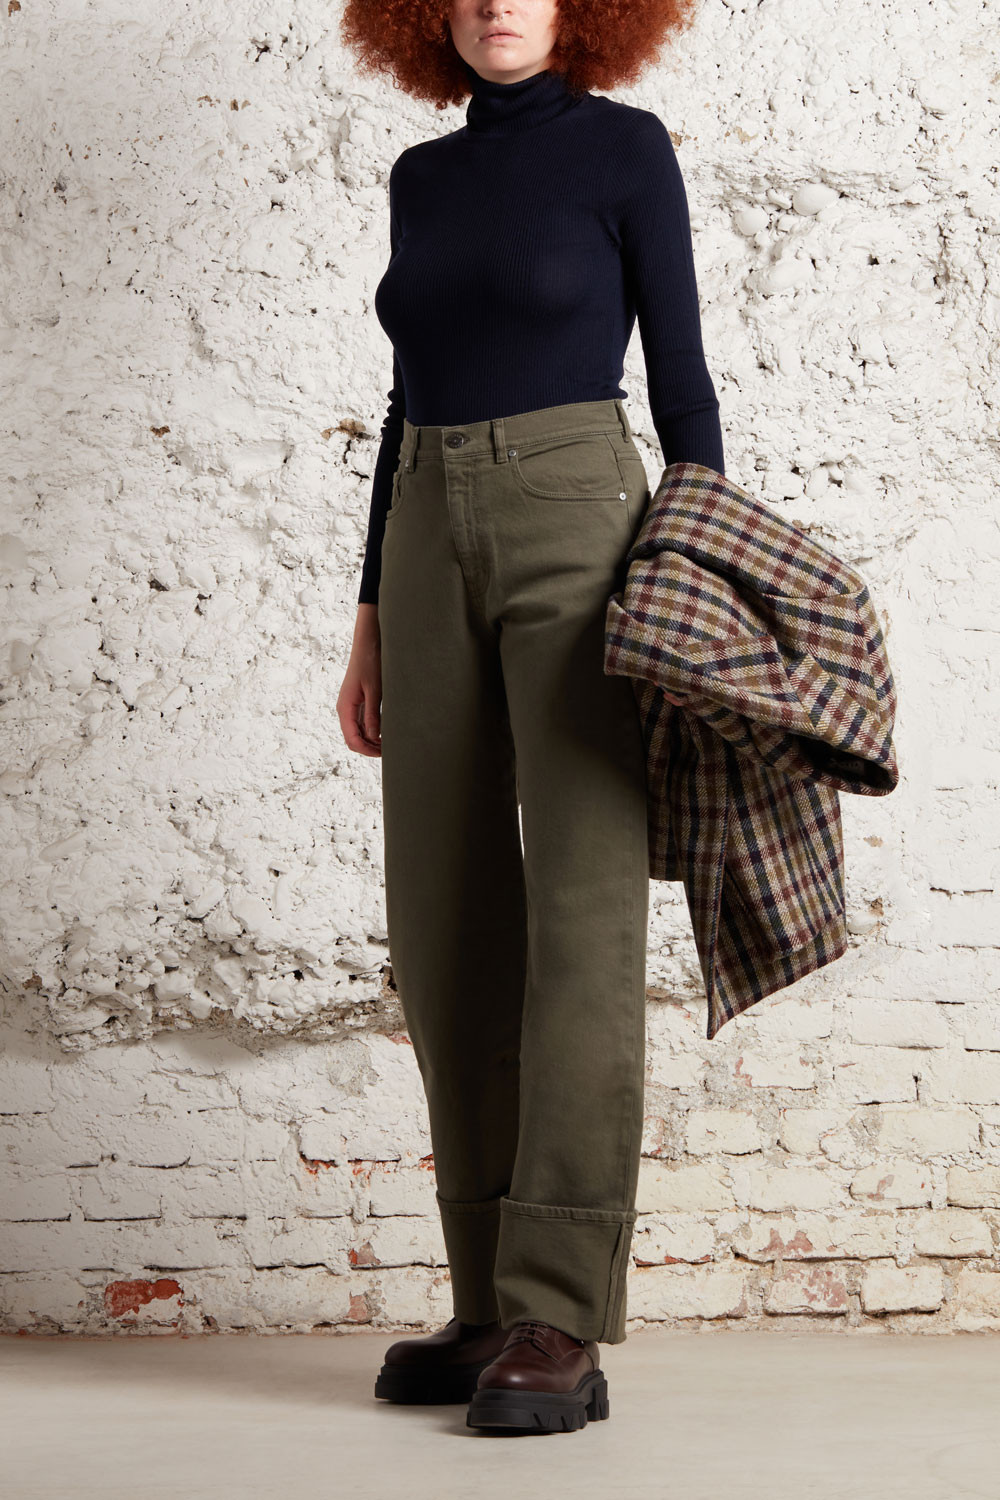 5 POCKETS TROUSERS - CABAREXYD231171